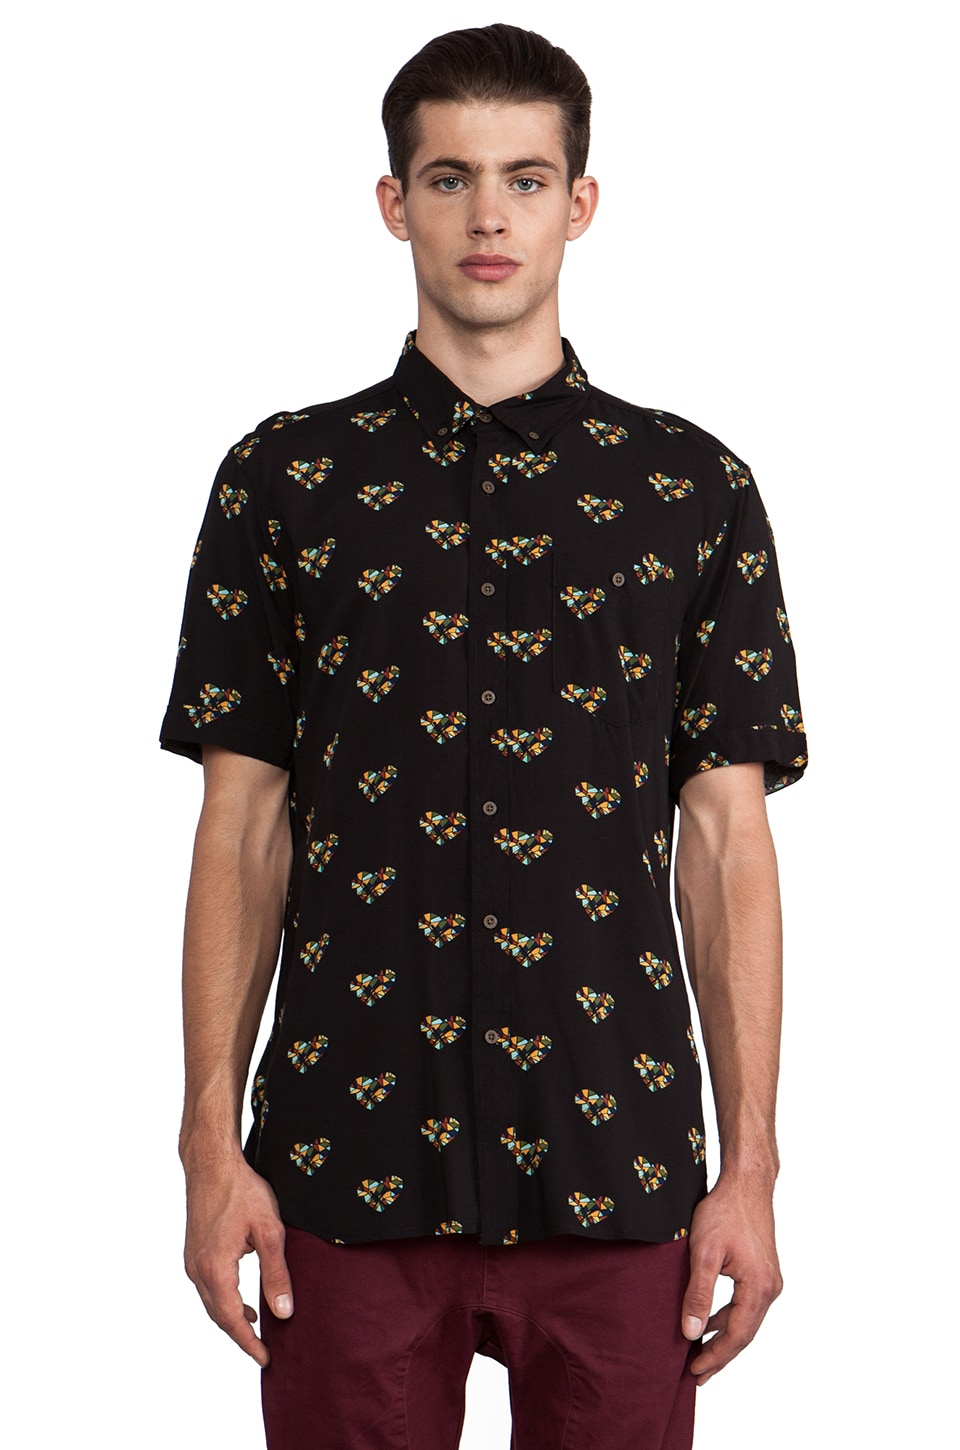 Zanerobe Non-Love Short Sleeve Button Down in Black